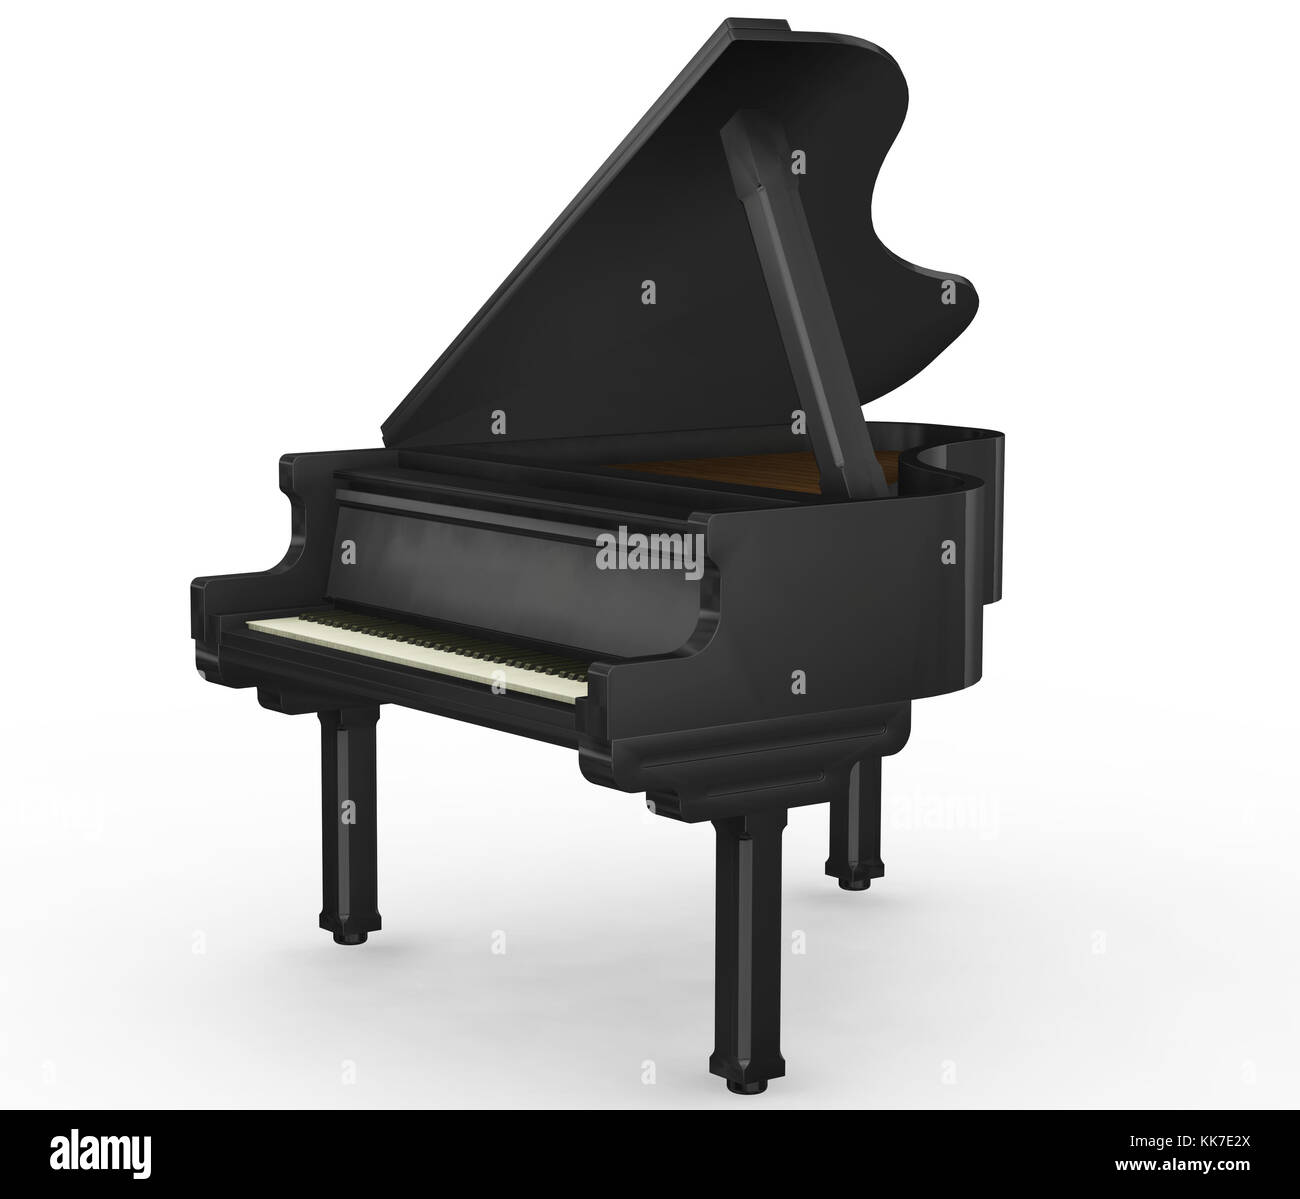 Grand Piano 3d Stock Photos & Grand Piano 3d Stock Images - Alamy